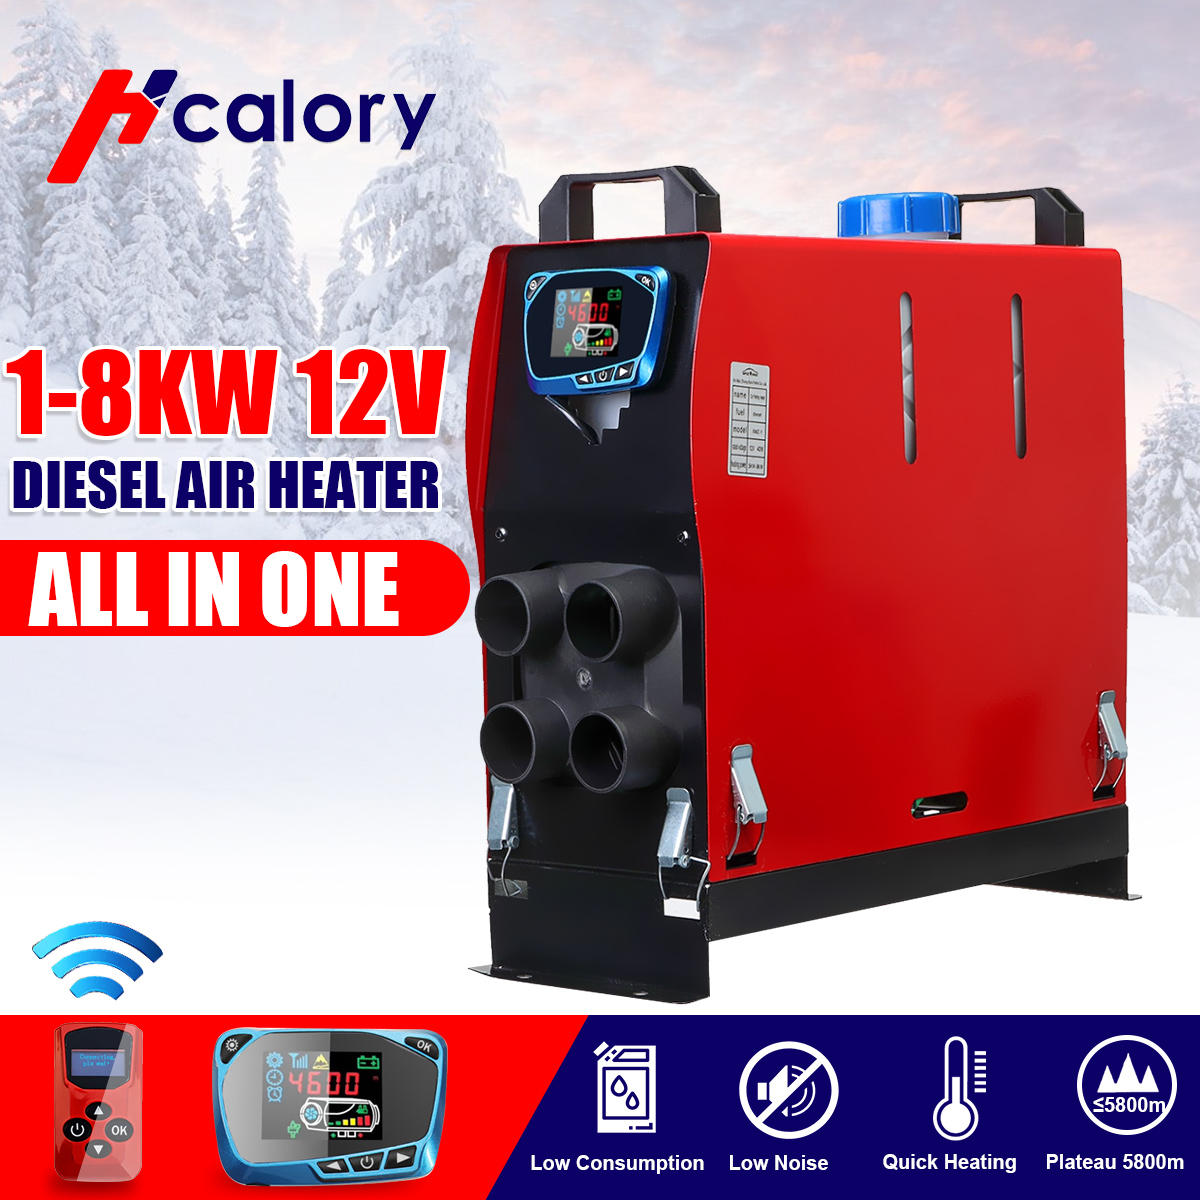 3KW/5KW/8KW Air Diesels Heater 8KW 12V 1 Hole Car Heater For Trucks Motor-Home Boats Bus +LCD Key Switch + Silencer + Remote